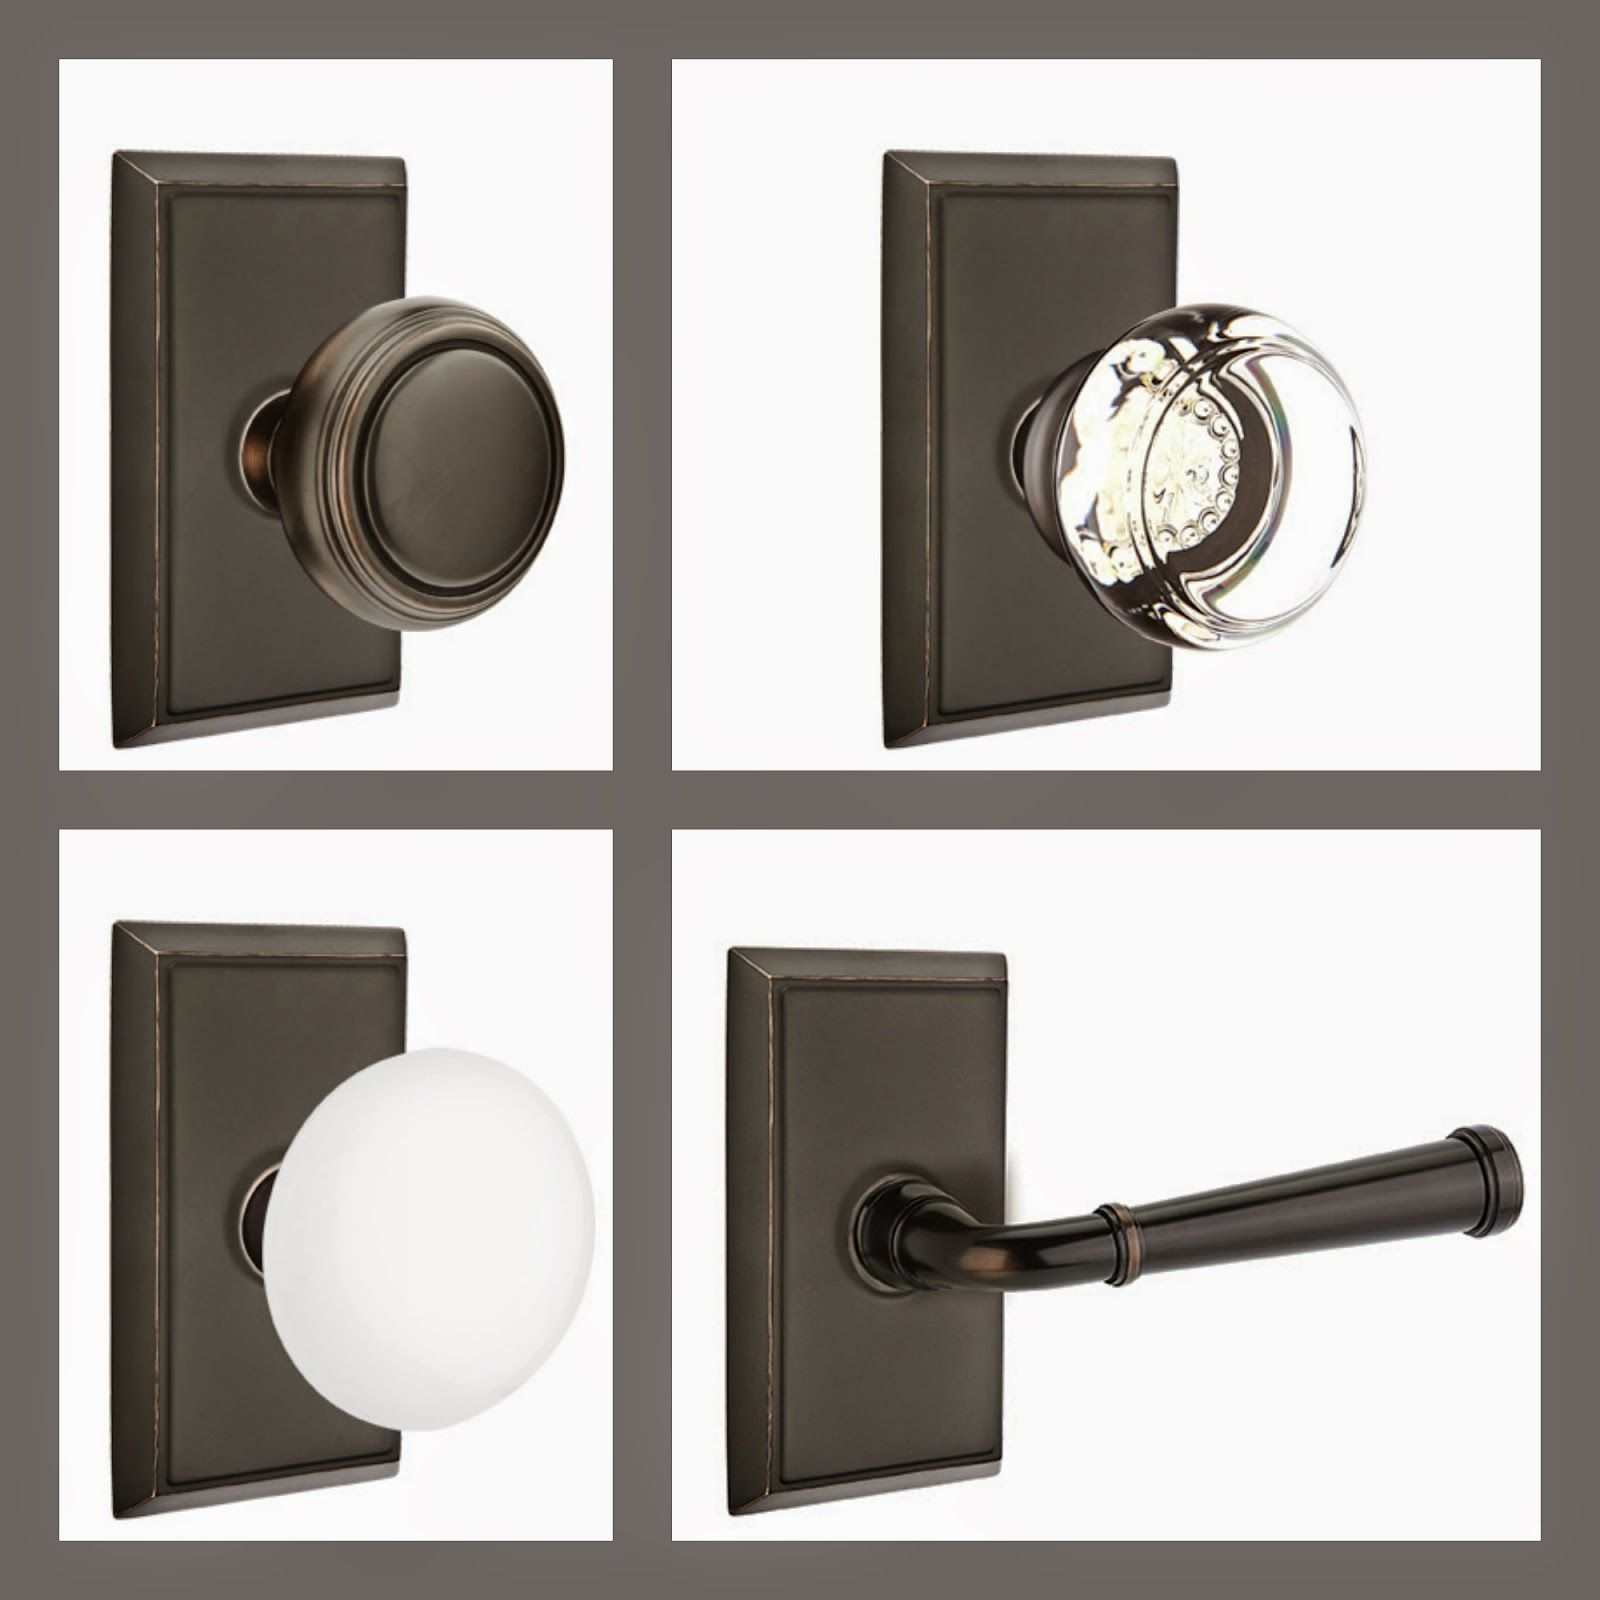 Serendipity Refined Blog: French Farmhouse Update: Lighting And Door  Hardware Selections